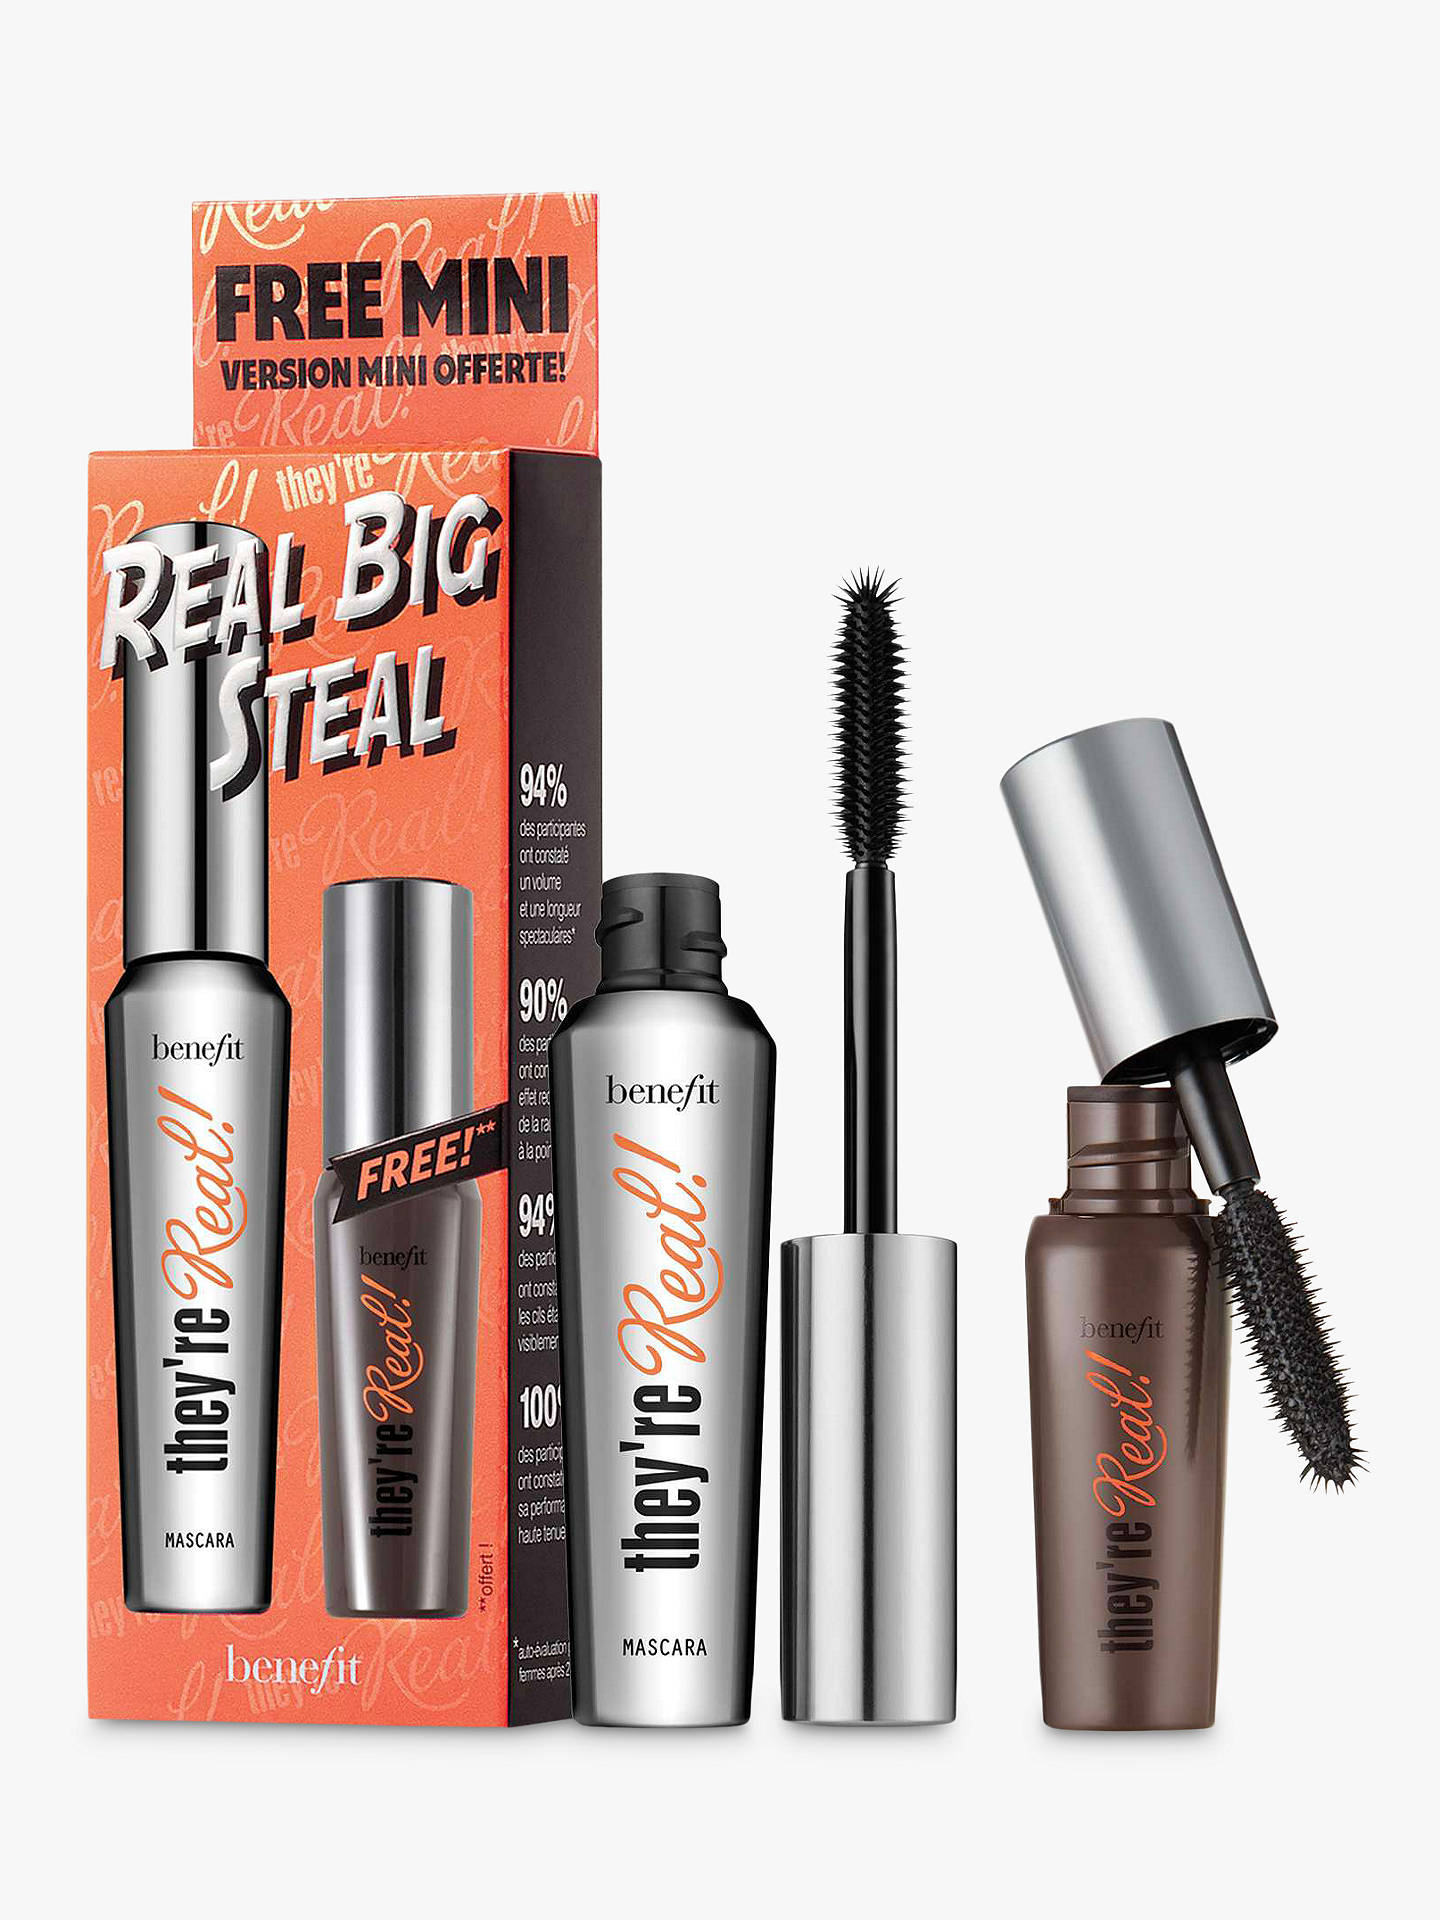 e0bd0375e39 Buy Benefit They're Real Big Steal Lengthening Mascara Duo Online at  johnlewis. ...